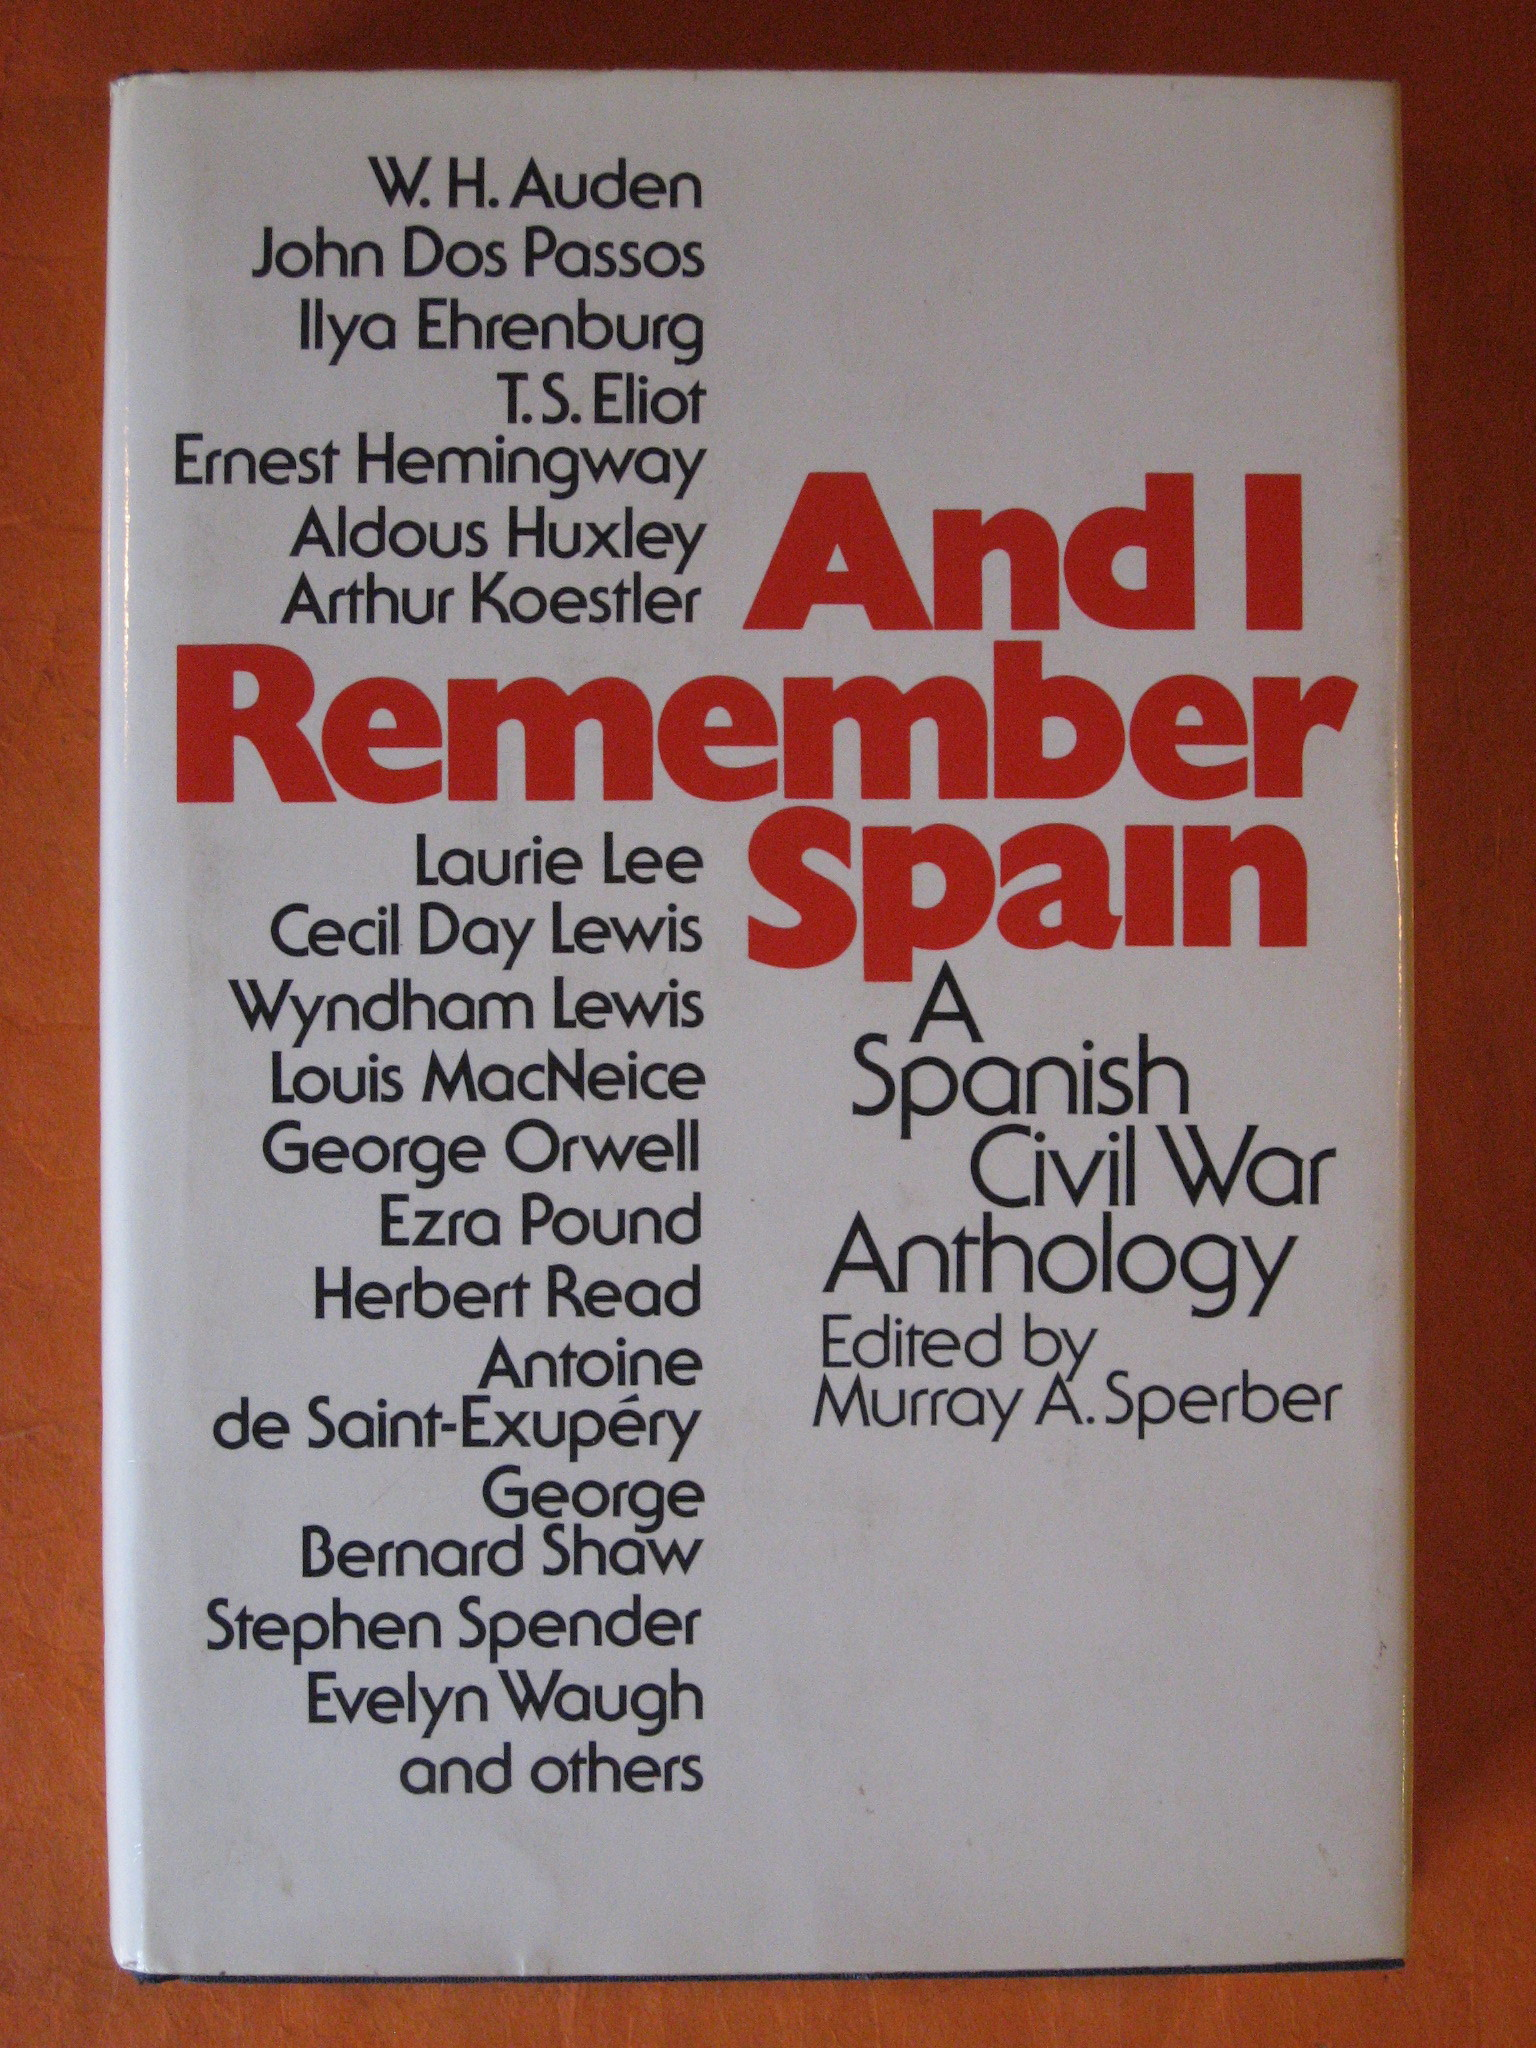 And I Remember Spain:  A Spanish Civil War Anthology, Sperber, Murray A. (ed.) Suden W.H. ; Dos Passos, John; Ehrenburg, Ilya;  Eliot, T.S. ; Hemingway, Ernest; Huxley, Aldous; Koestler, Arthur; Lee, Laurie; Lewis, Cecil Day; Lewis, Whndham; MacNeice, Louis; Orwell, George; Pound, Ezra; Read, Herbert;